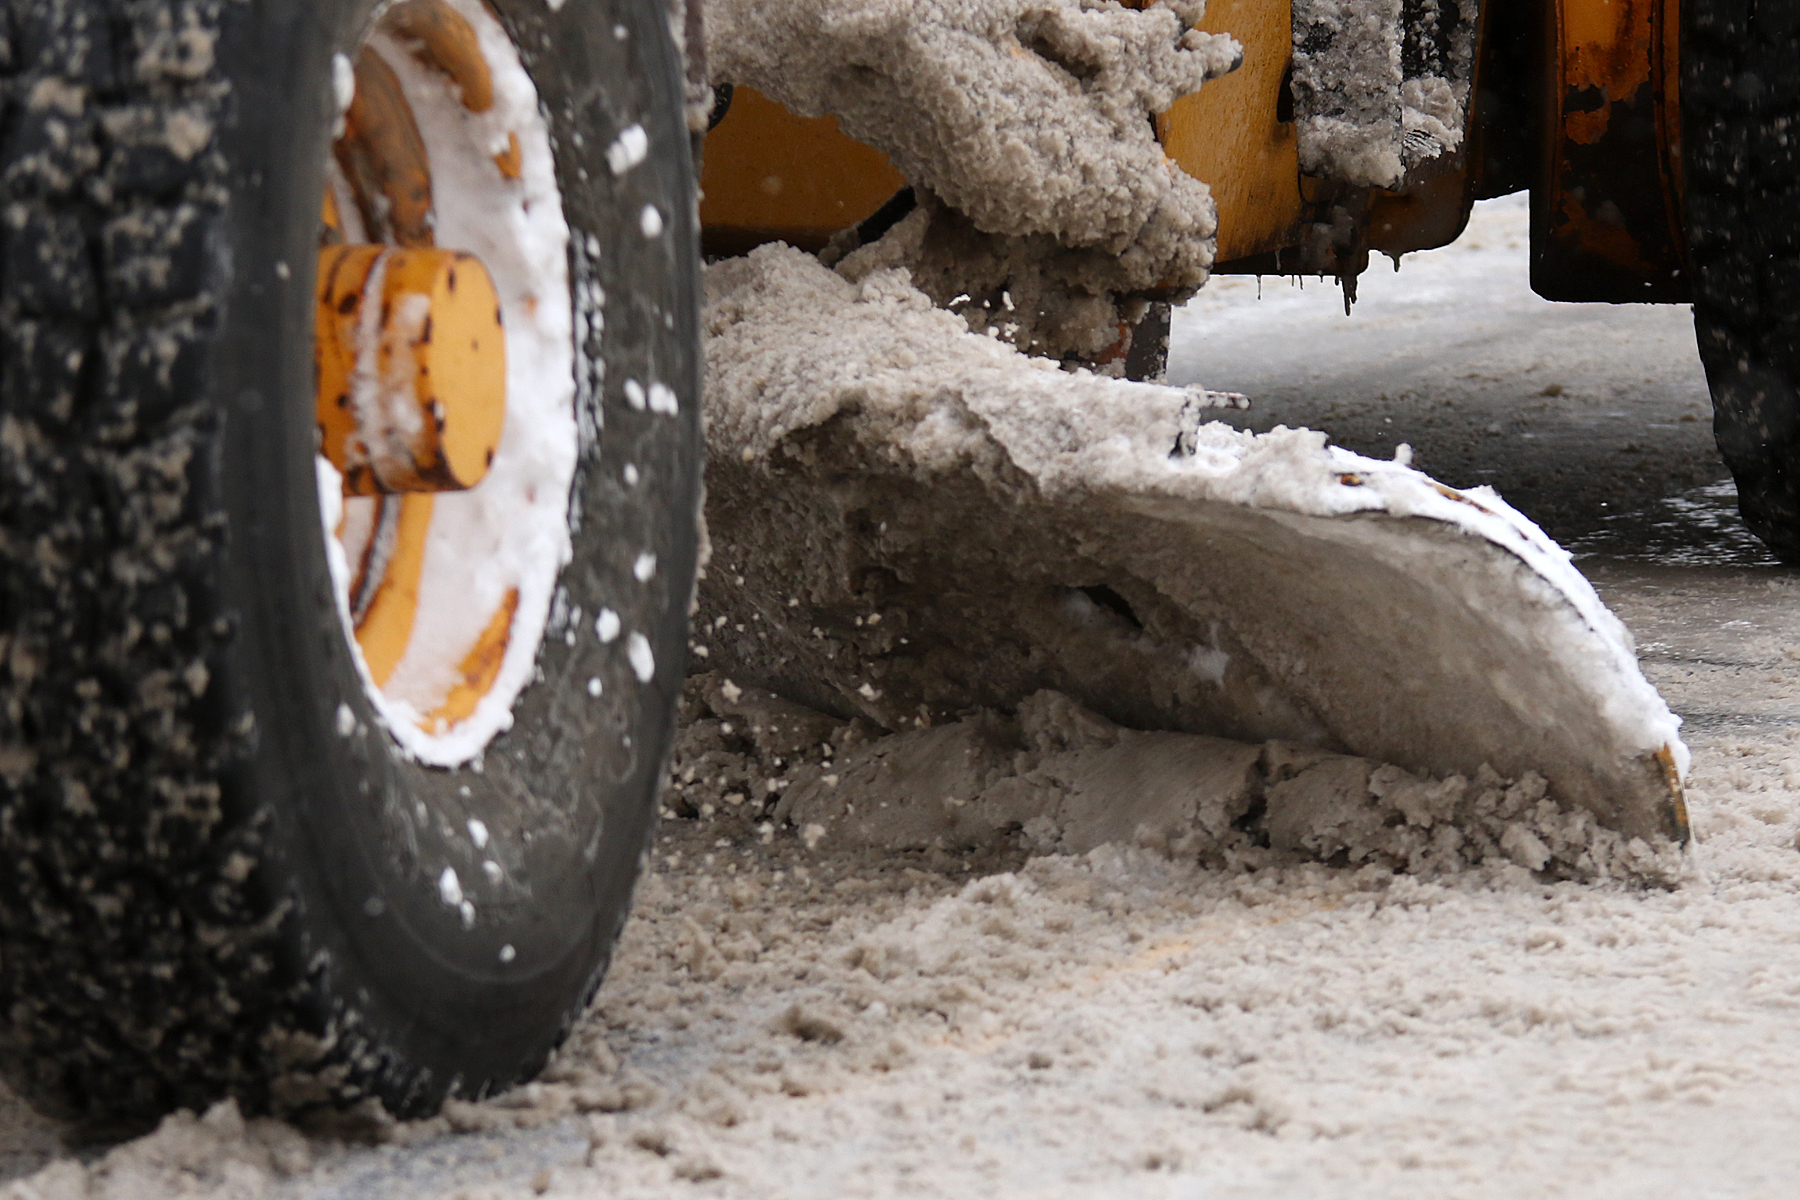 NDP blasts Conservatives over northern winter road safety